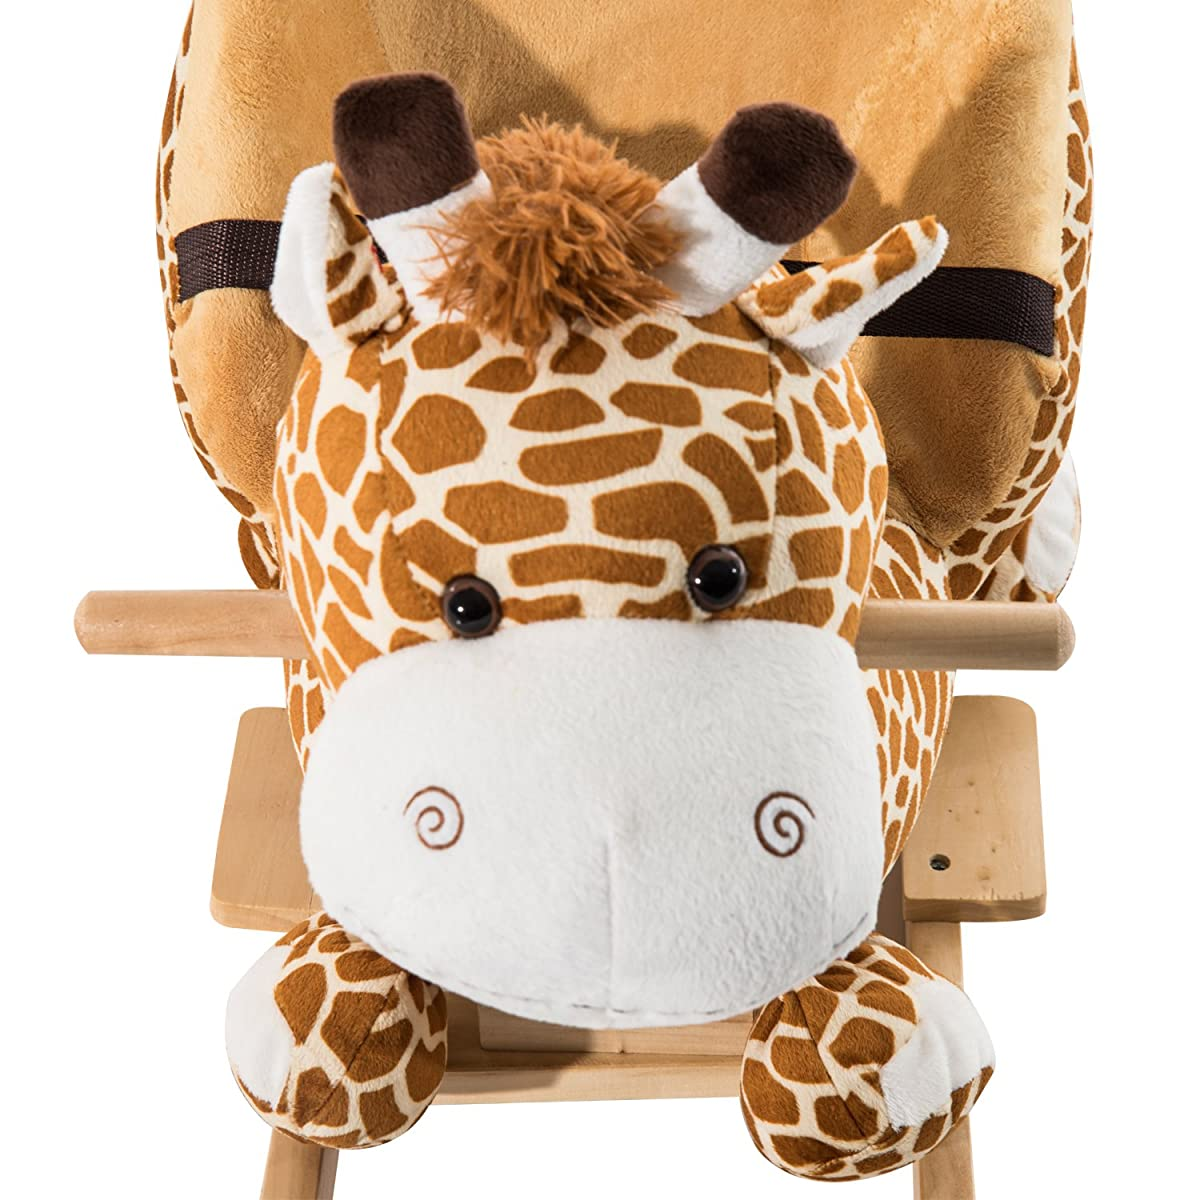 Giraffe Rocking Chair Qaba Kids Plush Rocking Horse Style Giraffe Theme Chair